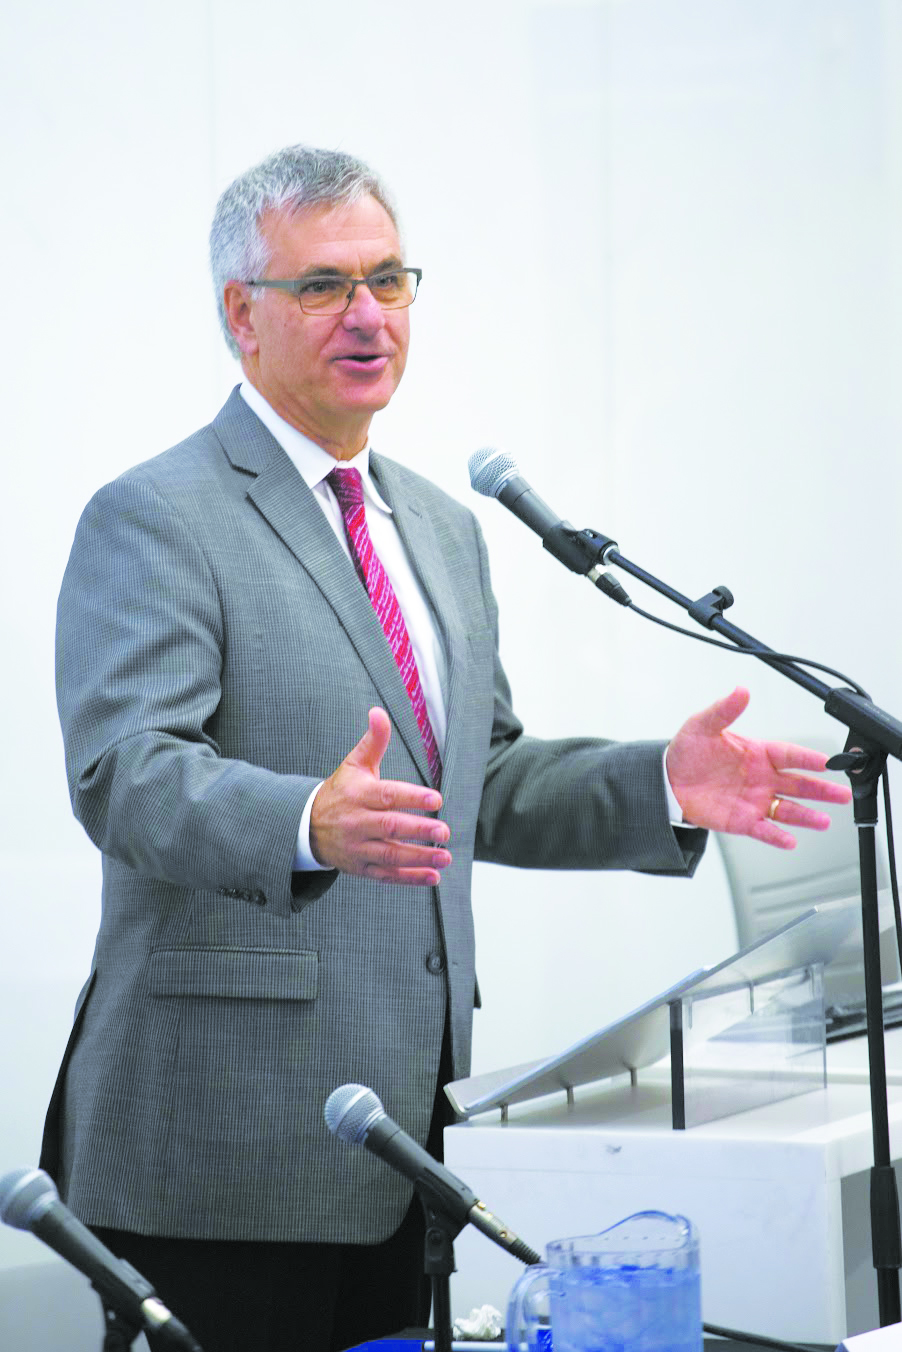 Pictured here: quebec MP Jean-Marc Fournier, Minister of Canadian Relations and the Canadian Francophonie.